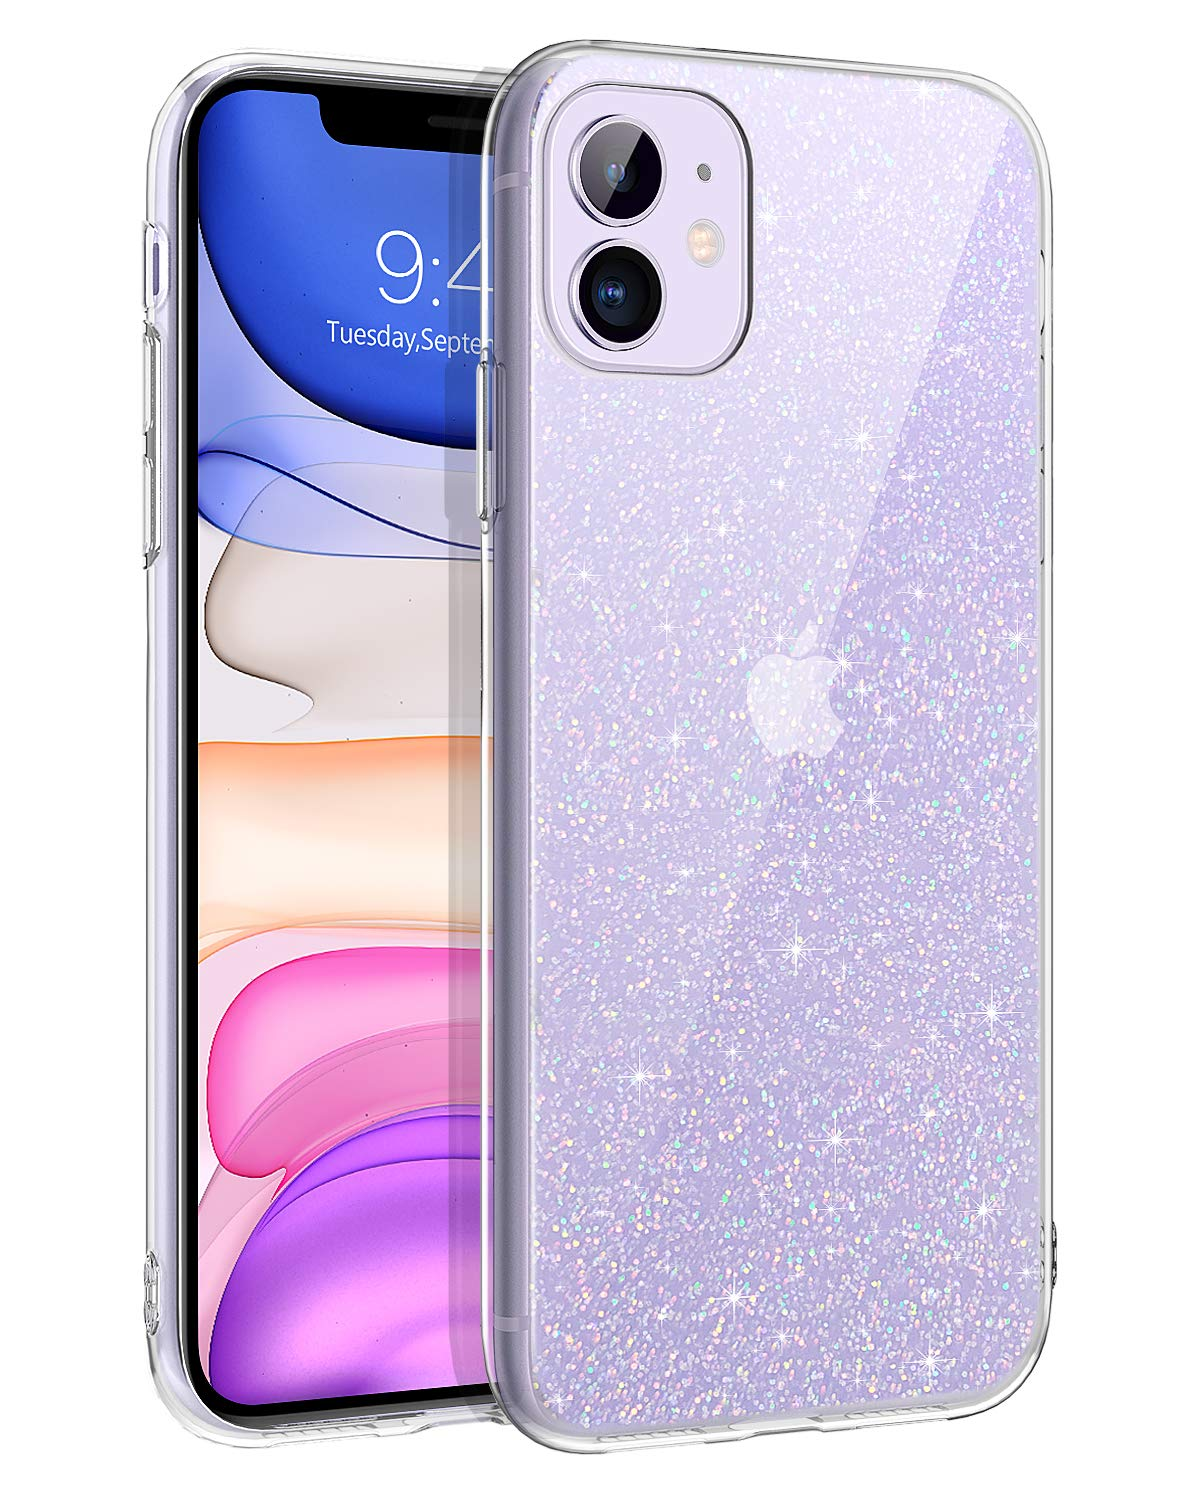 iPhone 11 Case, DOMAVER iPhone 11 Cases Glitter Sparkle Bling Shiny Sparkly Slim Lightweight Flexible TPU Shock Absorption Durable Cover Protective Shockproof Phone Case for iPhone 11 (6.1 Inch)